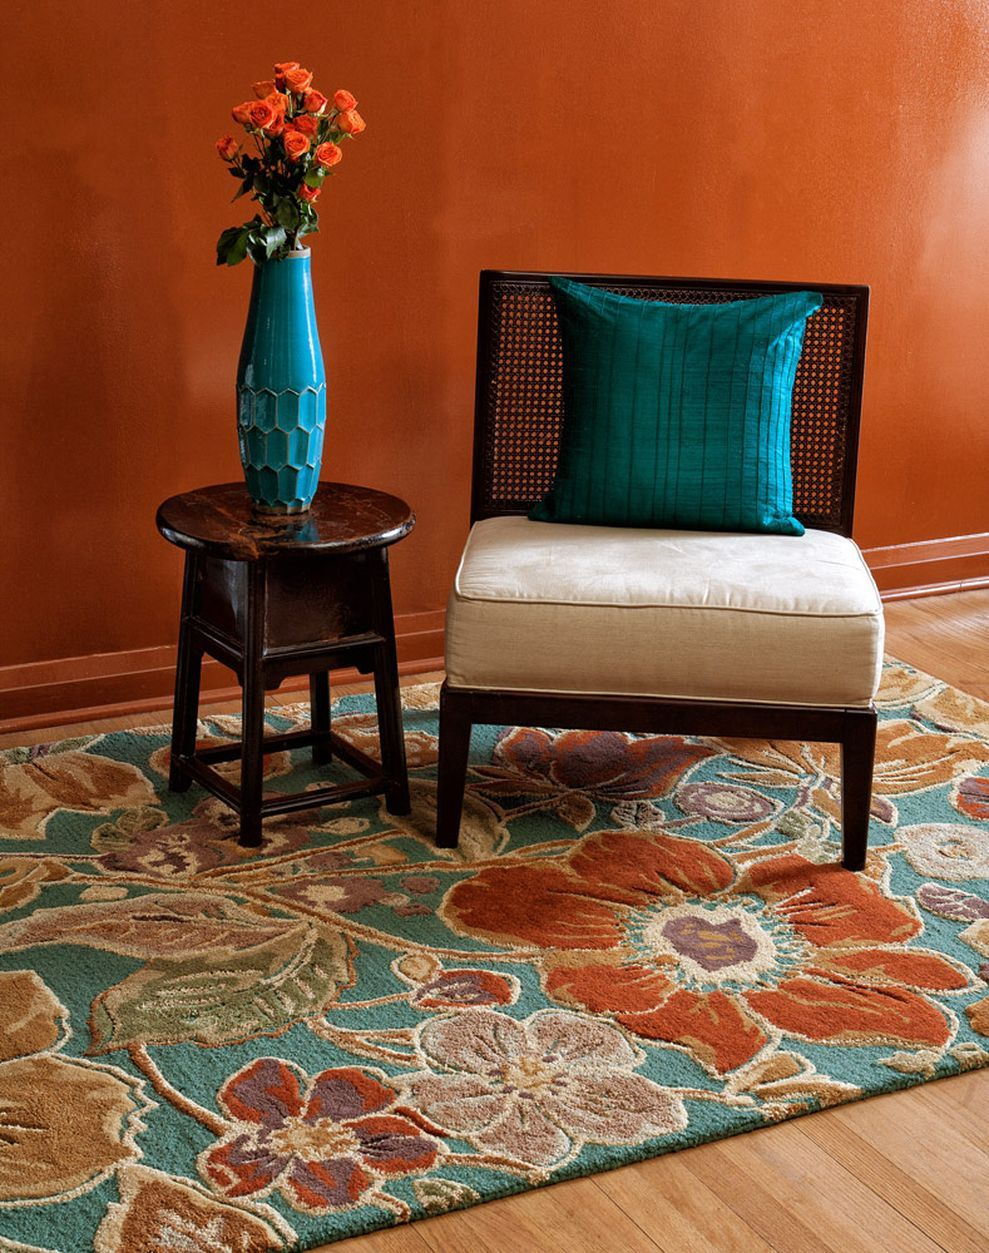 53 Adorable Burnt Orange And Teal Living Room Ideas Teal Living